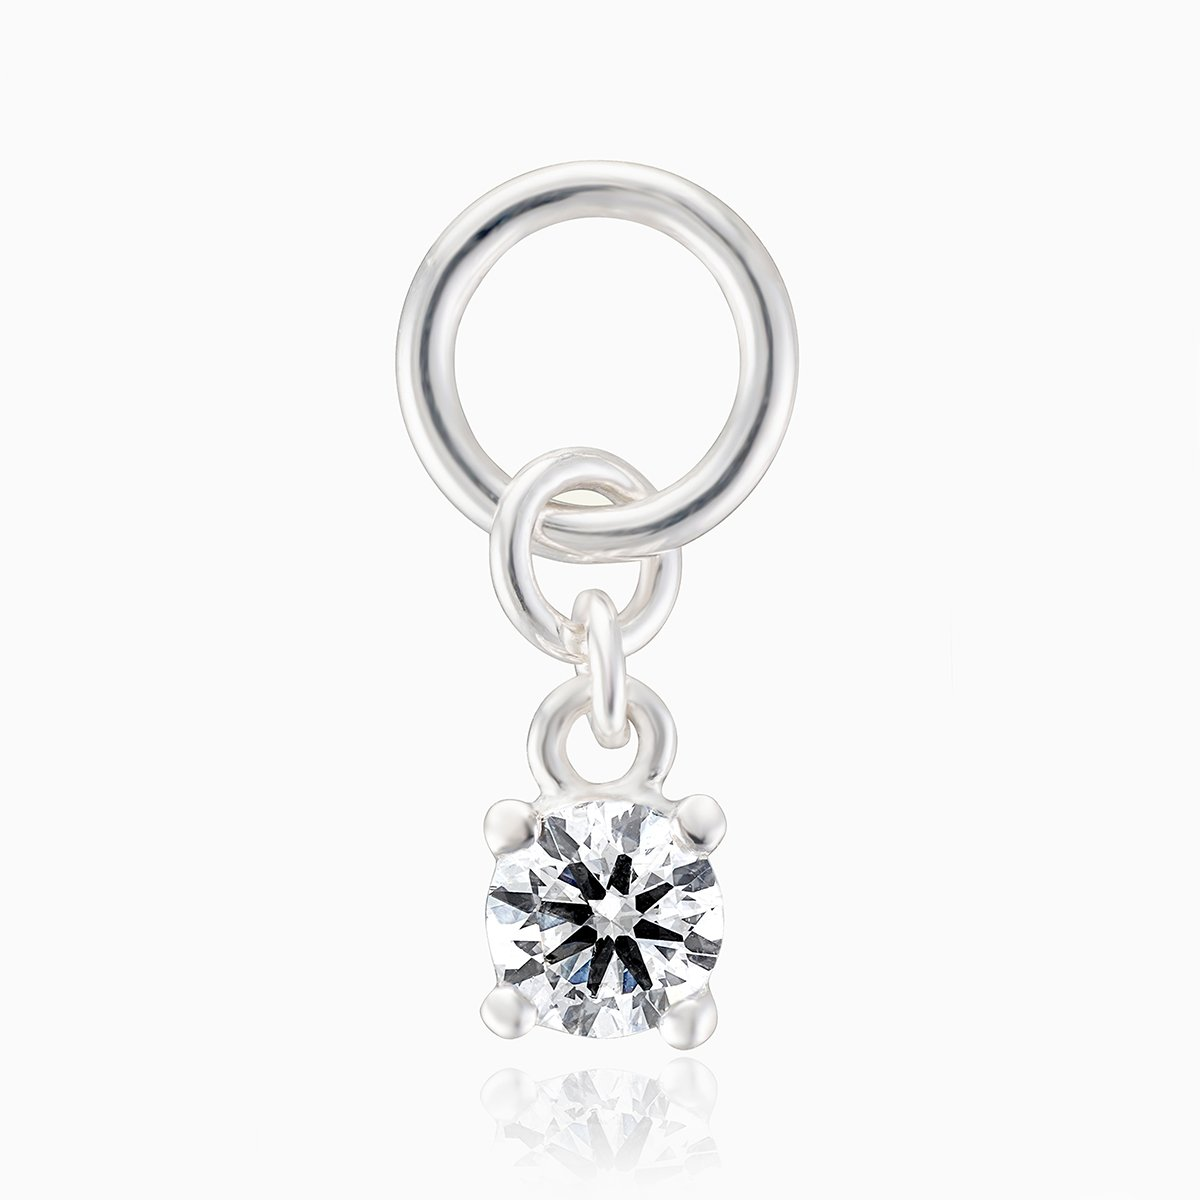 Product title: CZ Silver Charm, product type: Charm